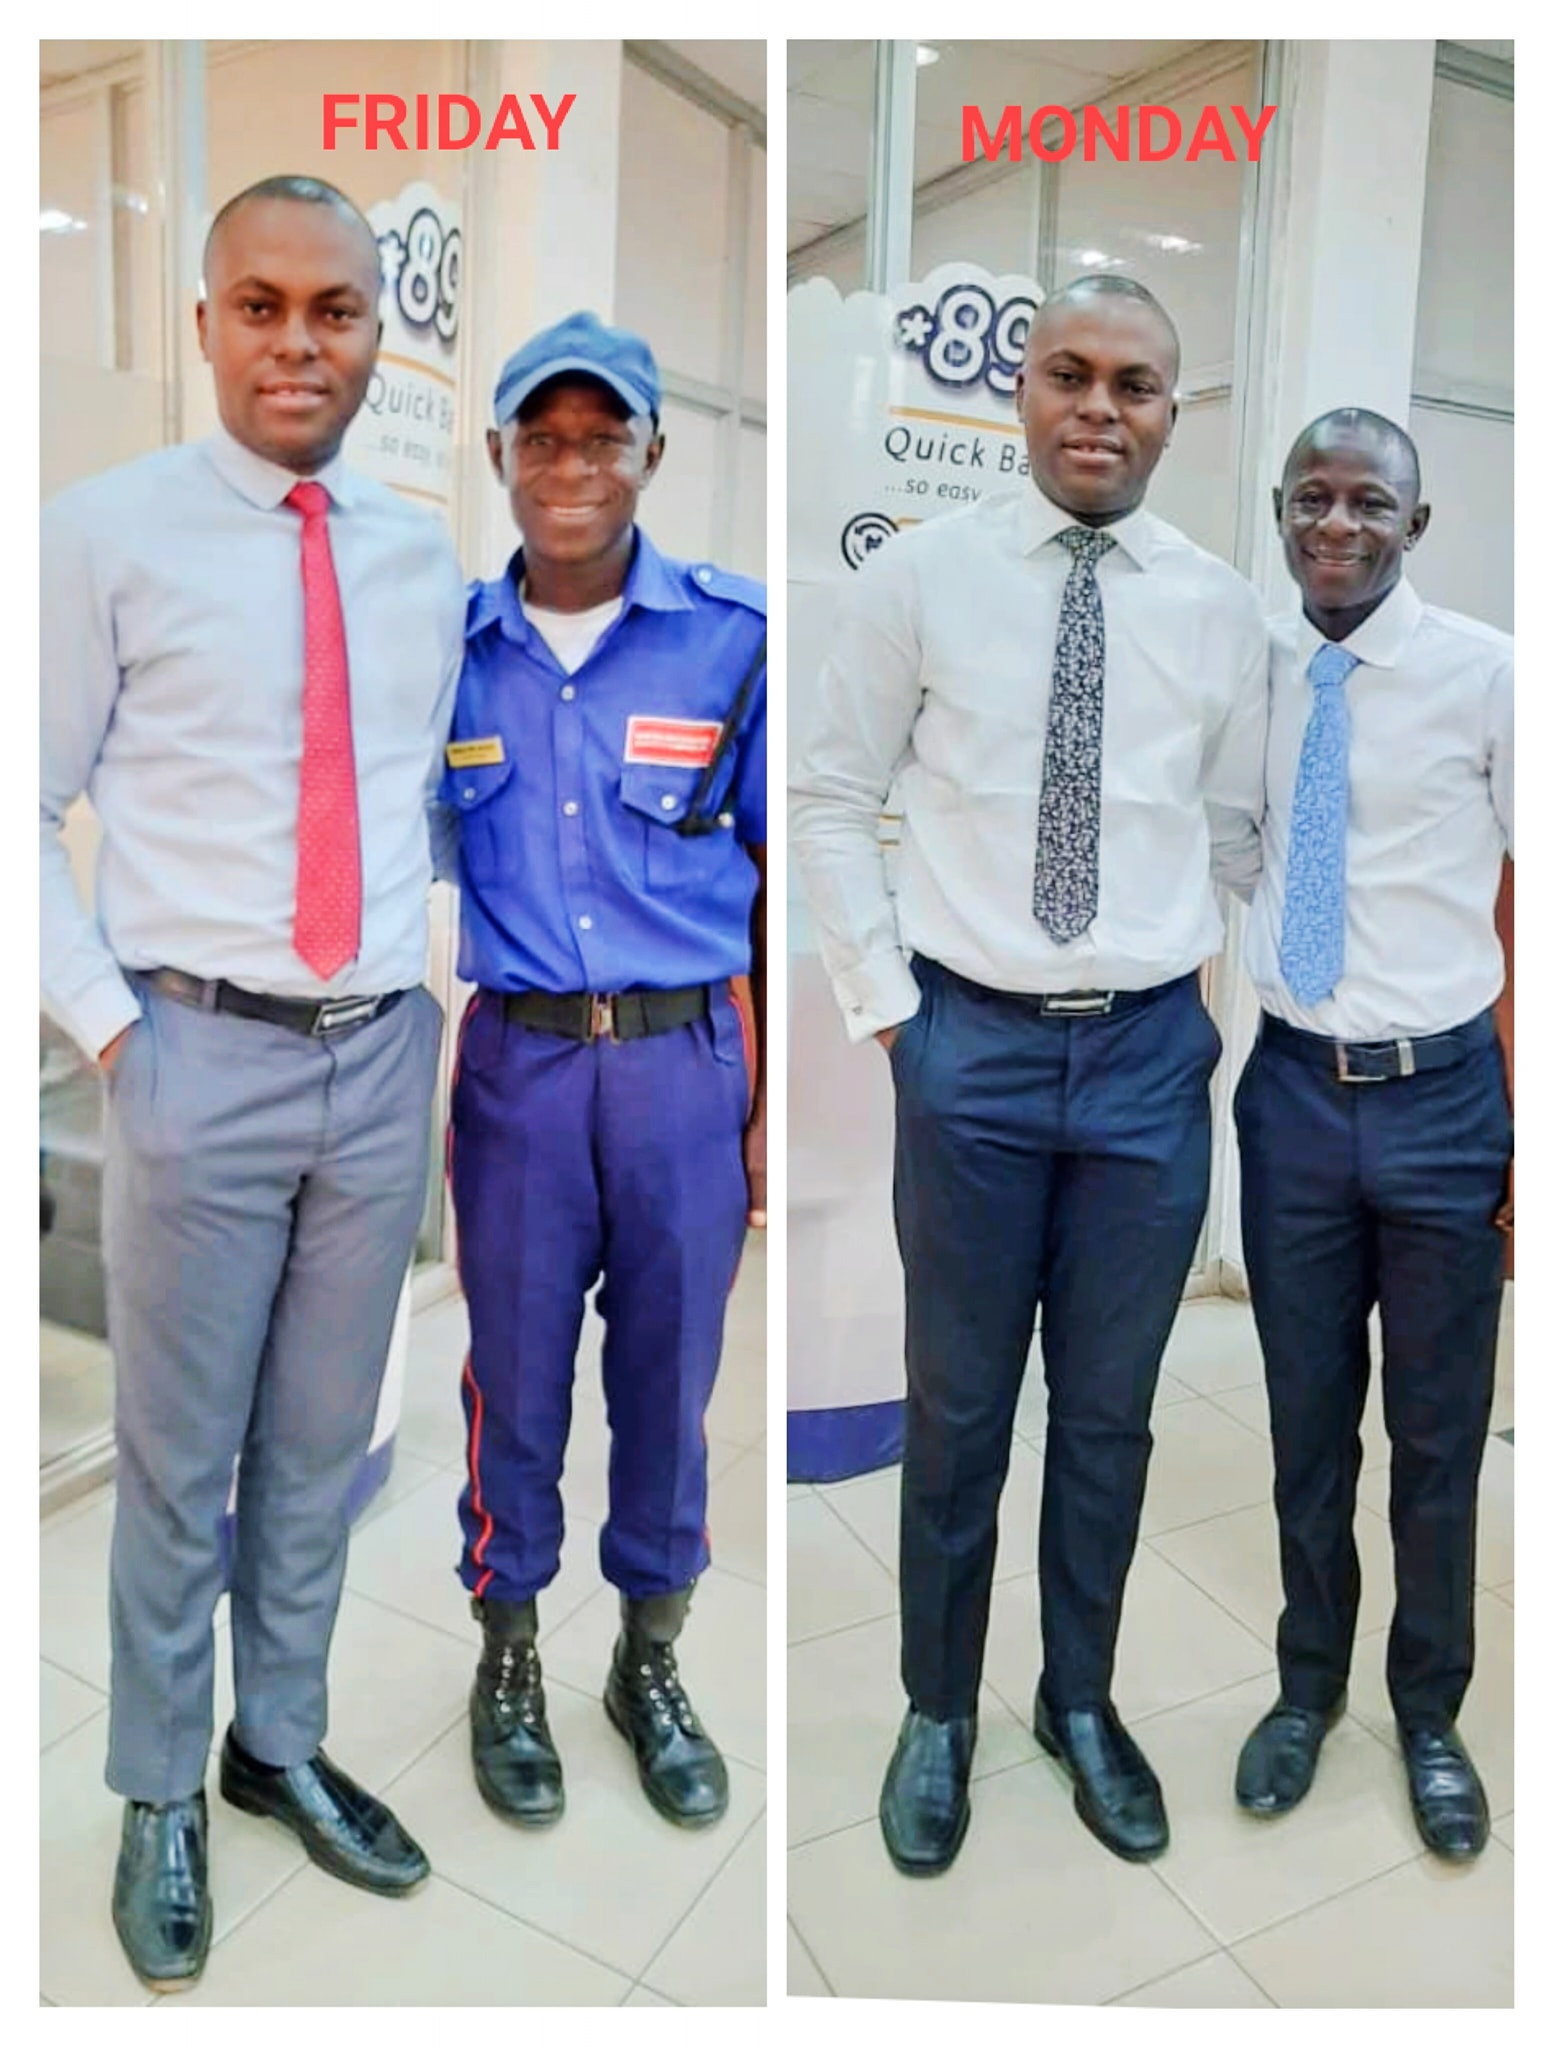 Banker narrates how he was able to help elevate a security guard to a better position in the bank